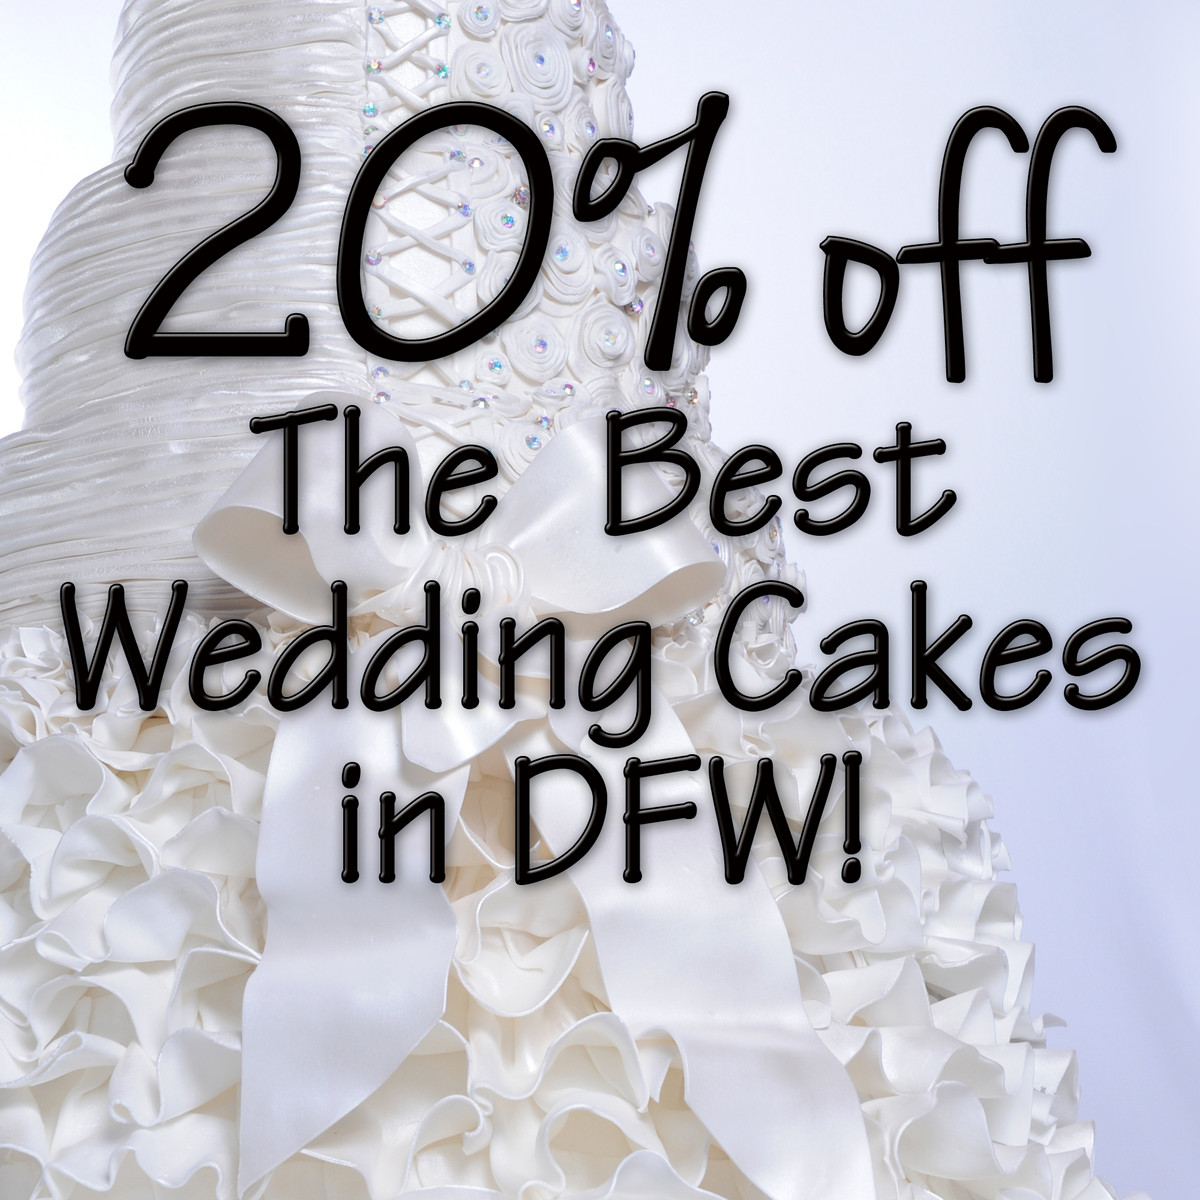 The Cake Guys Reviews - Duncanville, TX - 797 Reviews